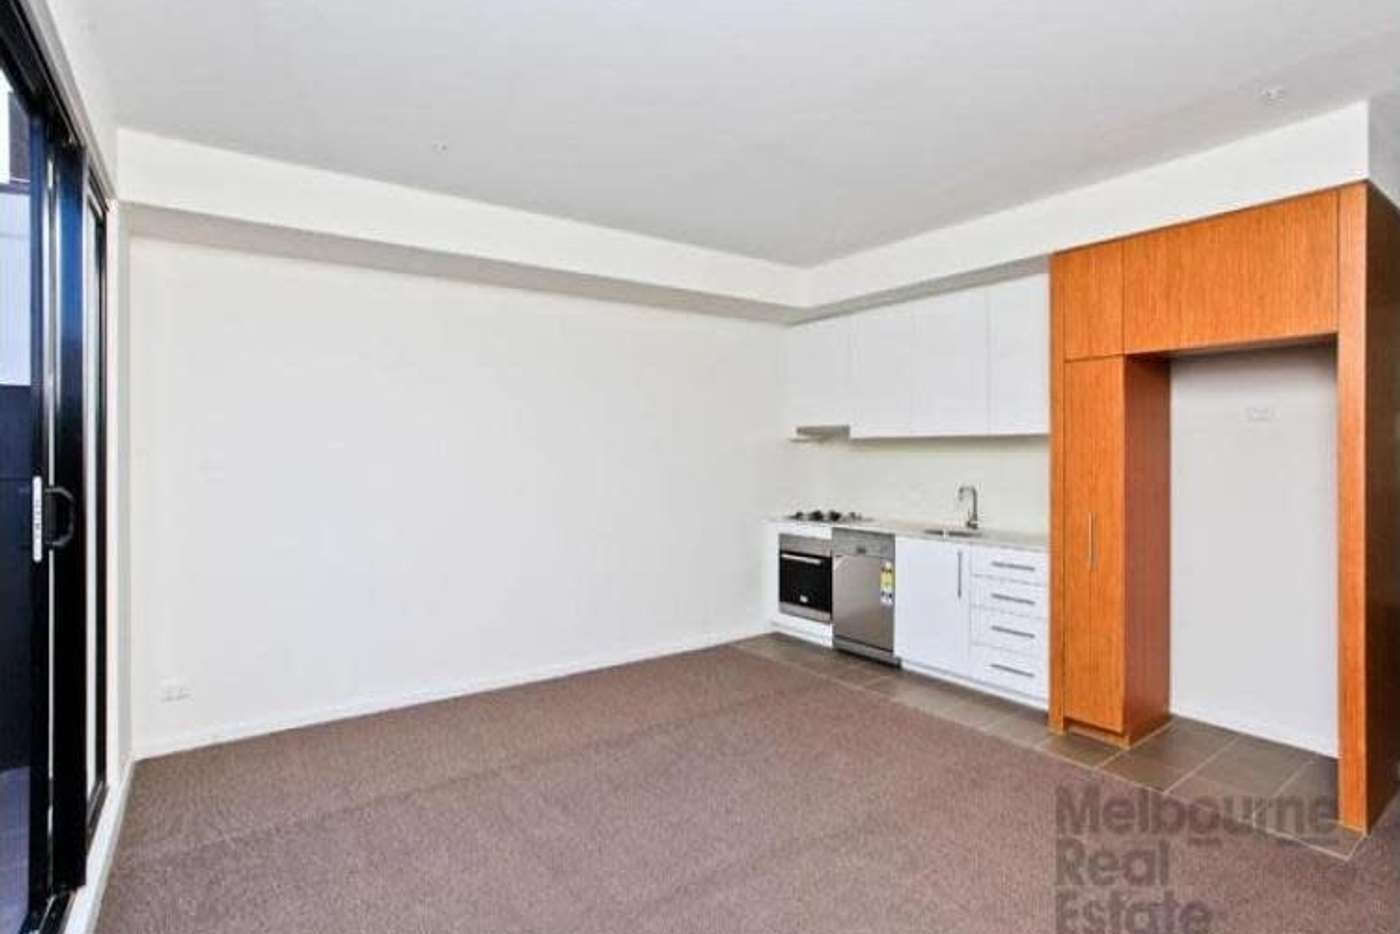 Main view of Homely apartment listing, 108/45 York Street, Richmond VIC 3121